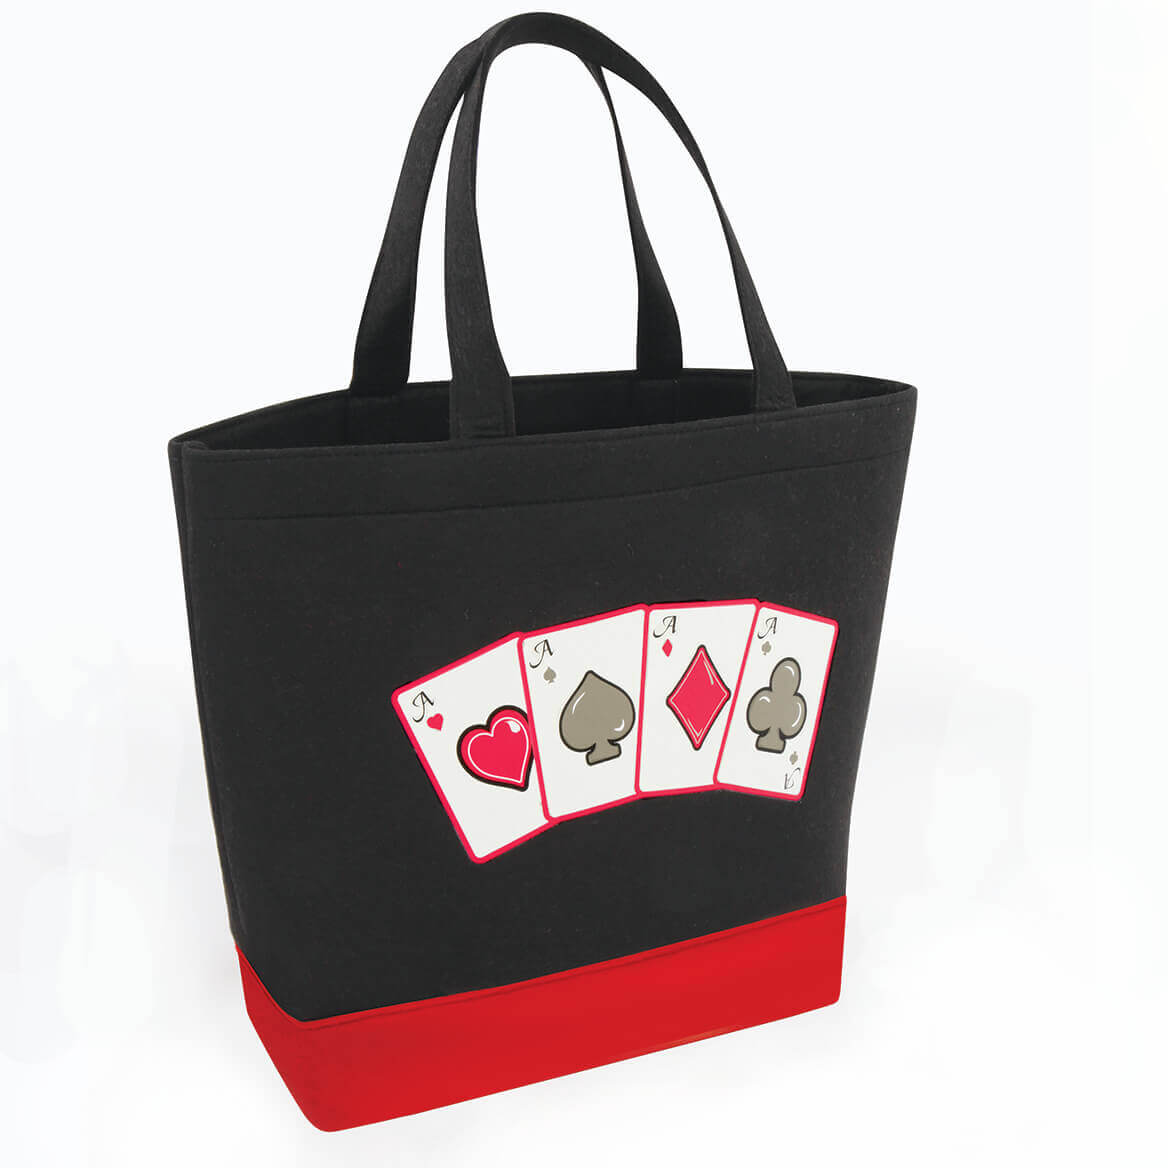 Lady Luck Tote Bag-369778